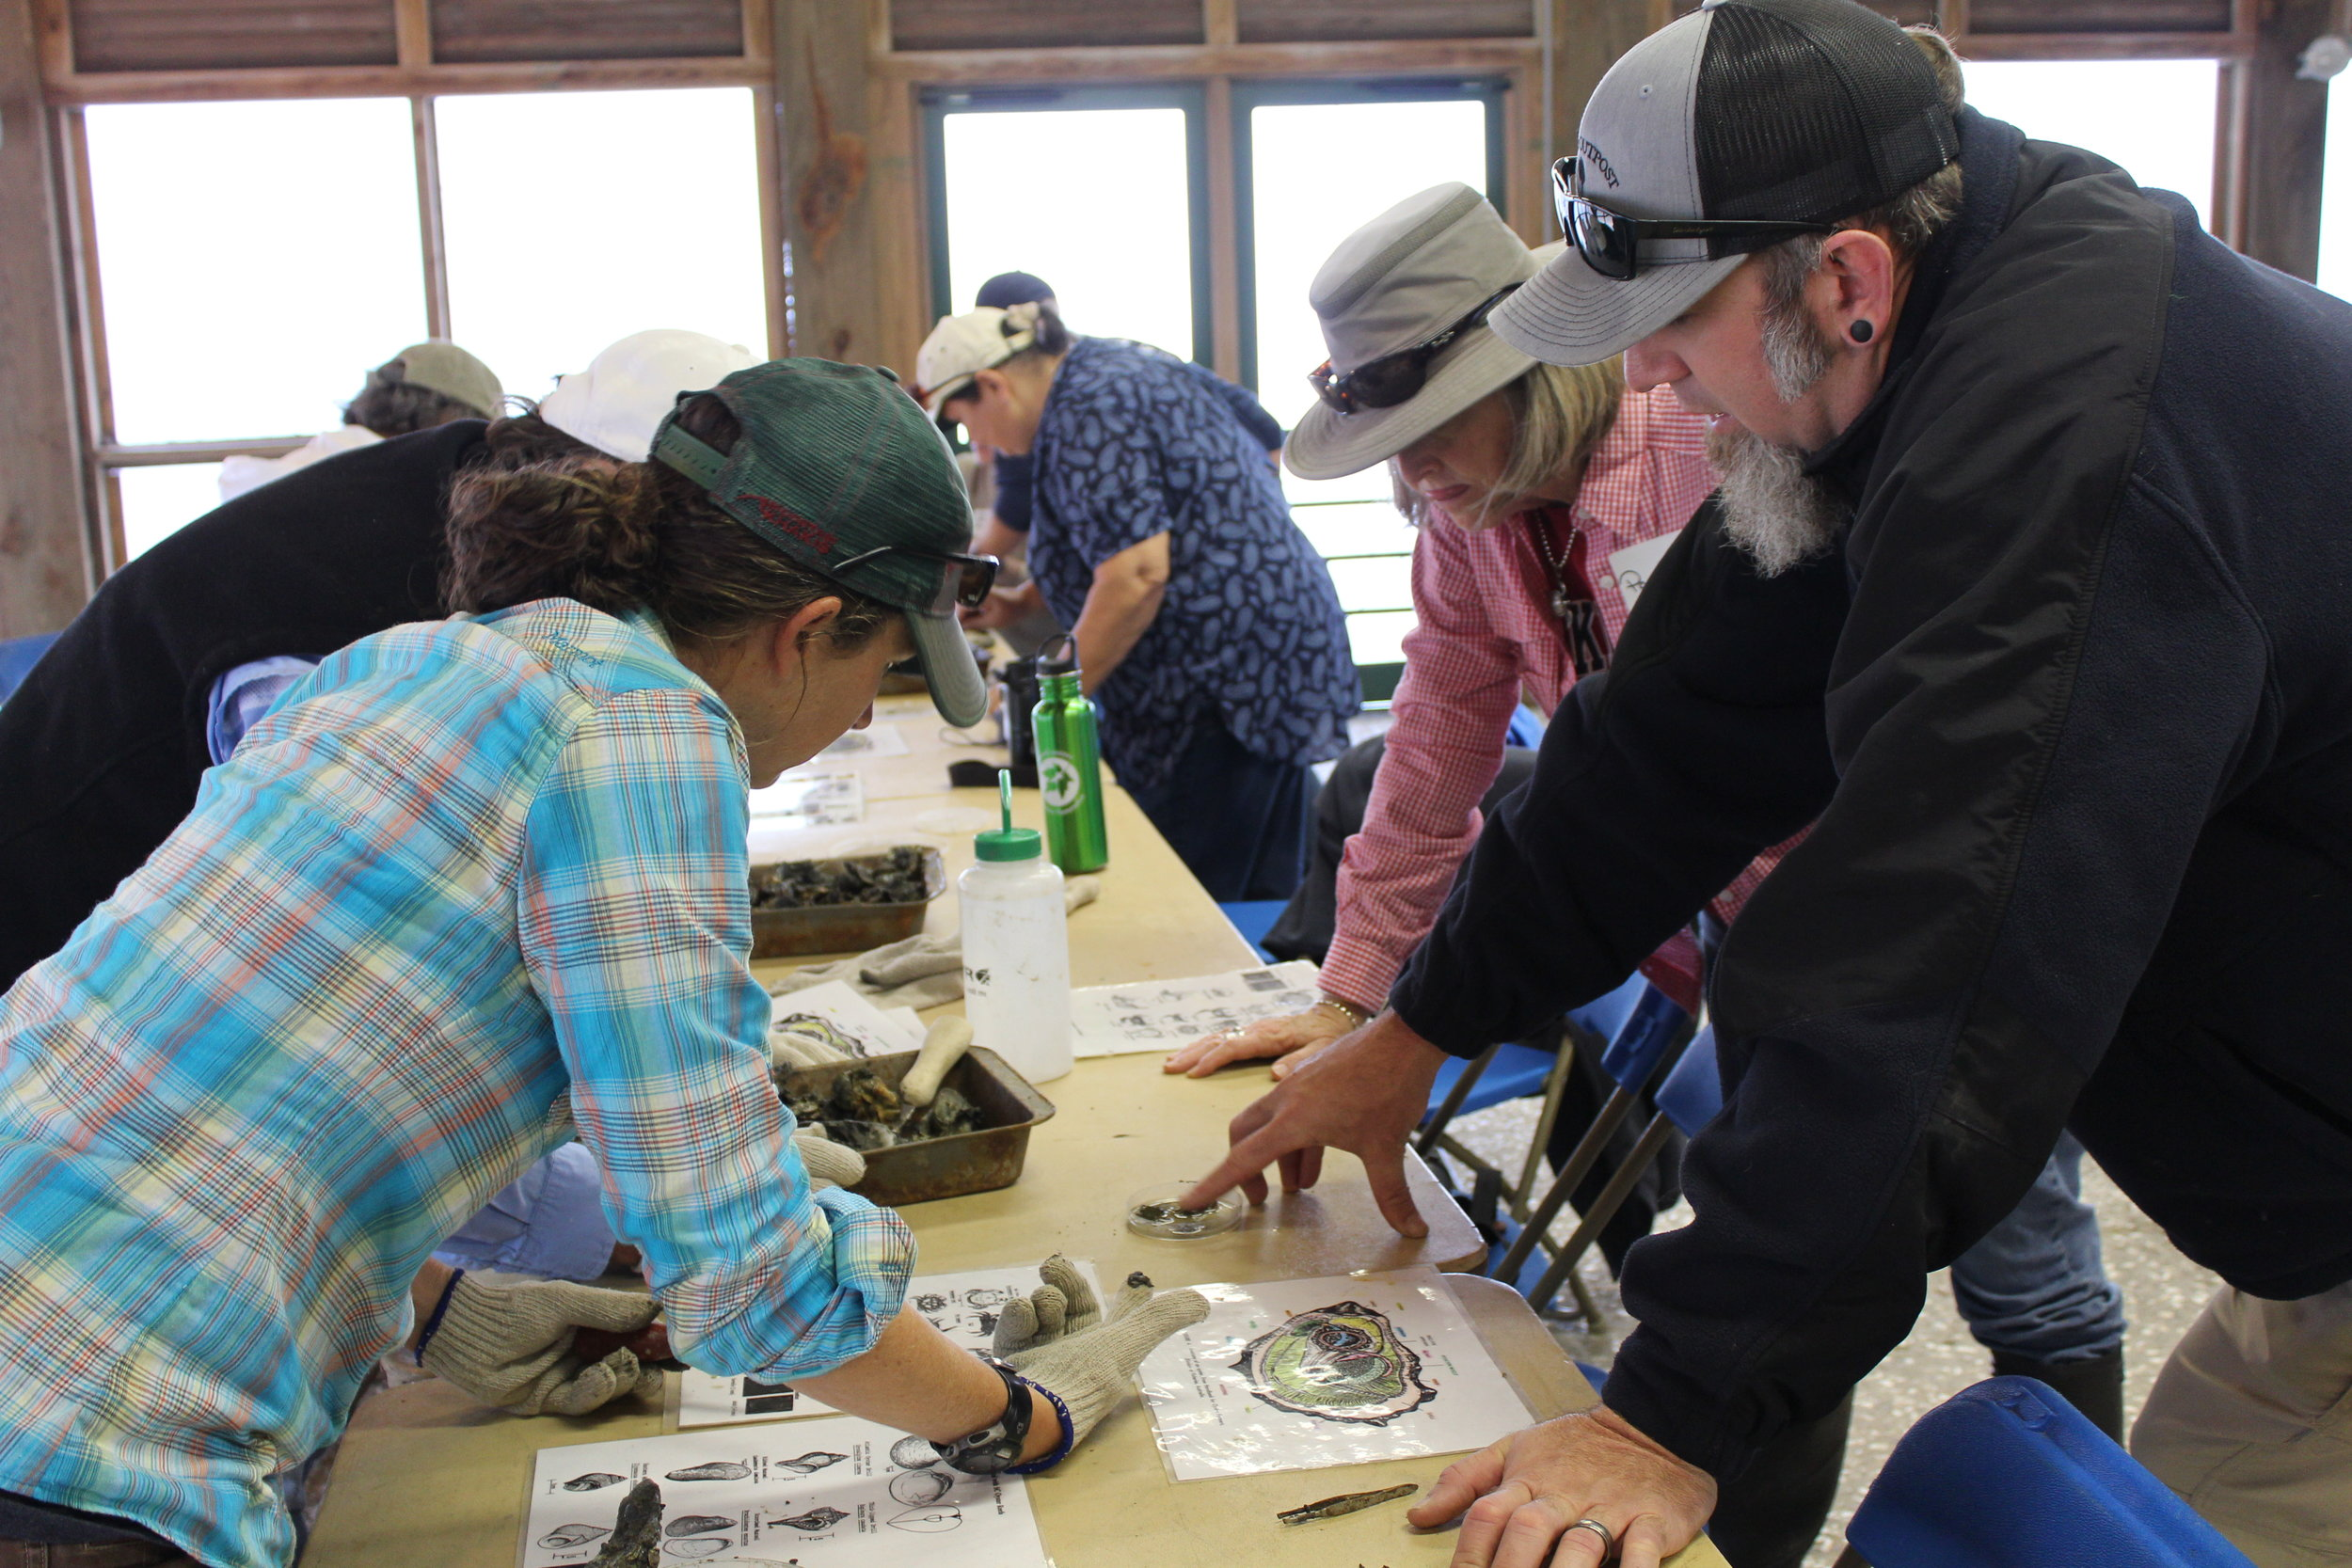 Biologist Michael Hodges (right) talks to workshop attendees dissecting a bag of oyster shells. (Photo: E. Weeks/SCDNR)